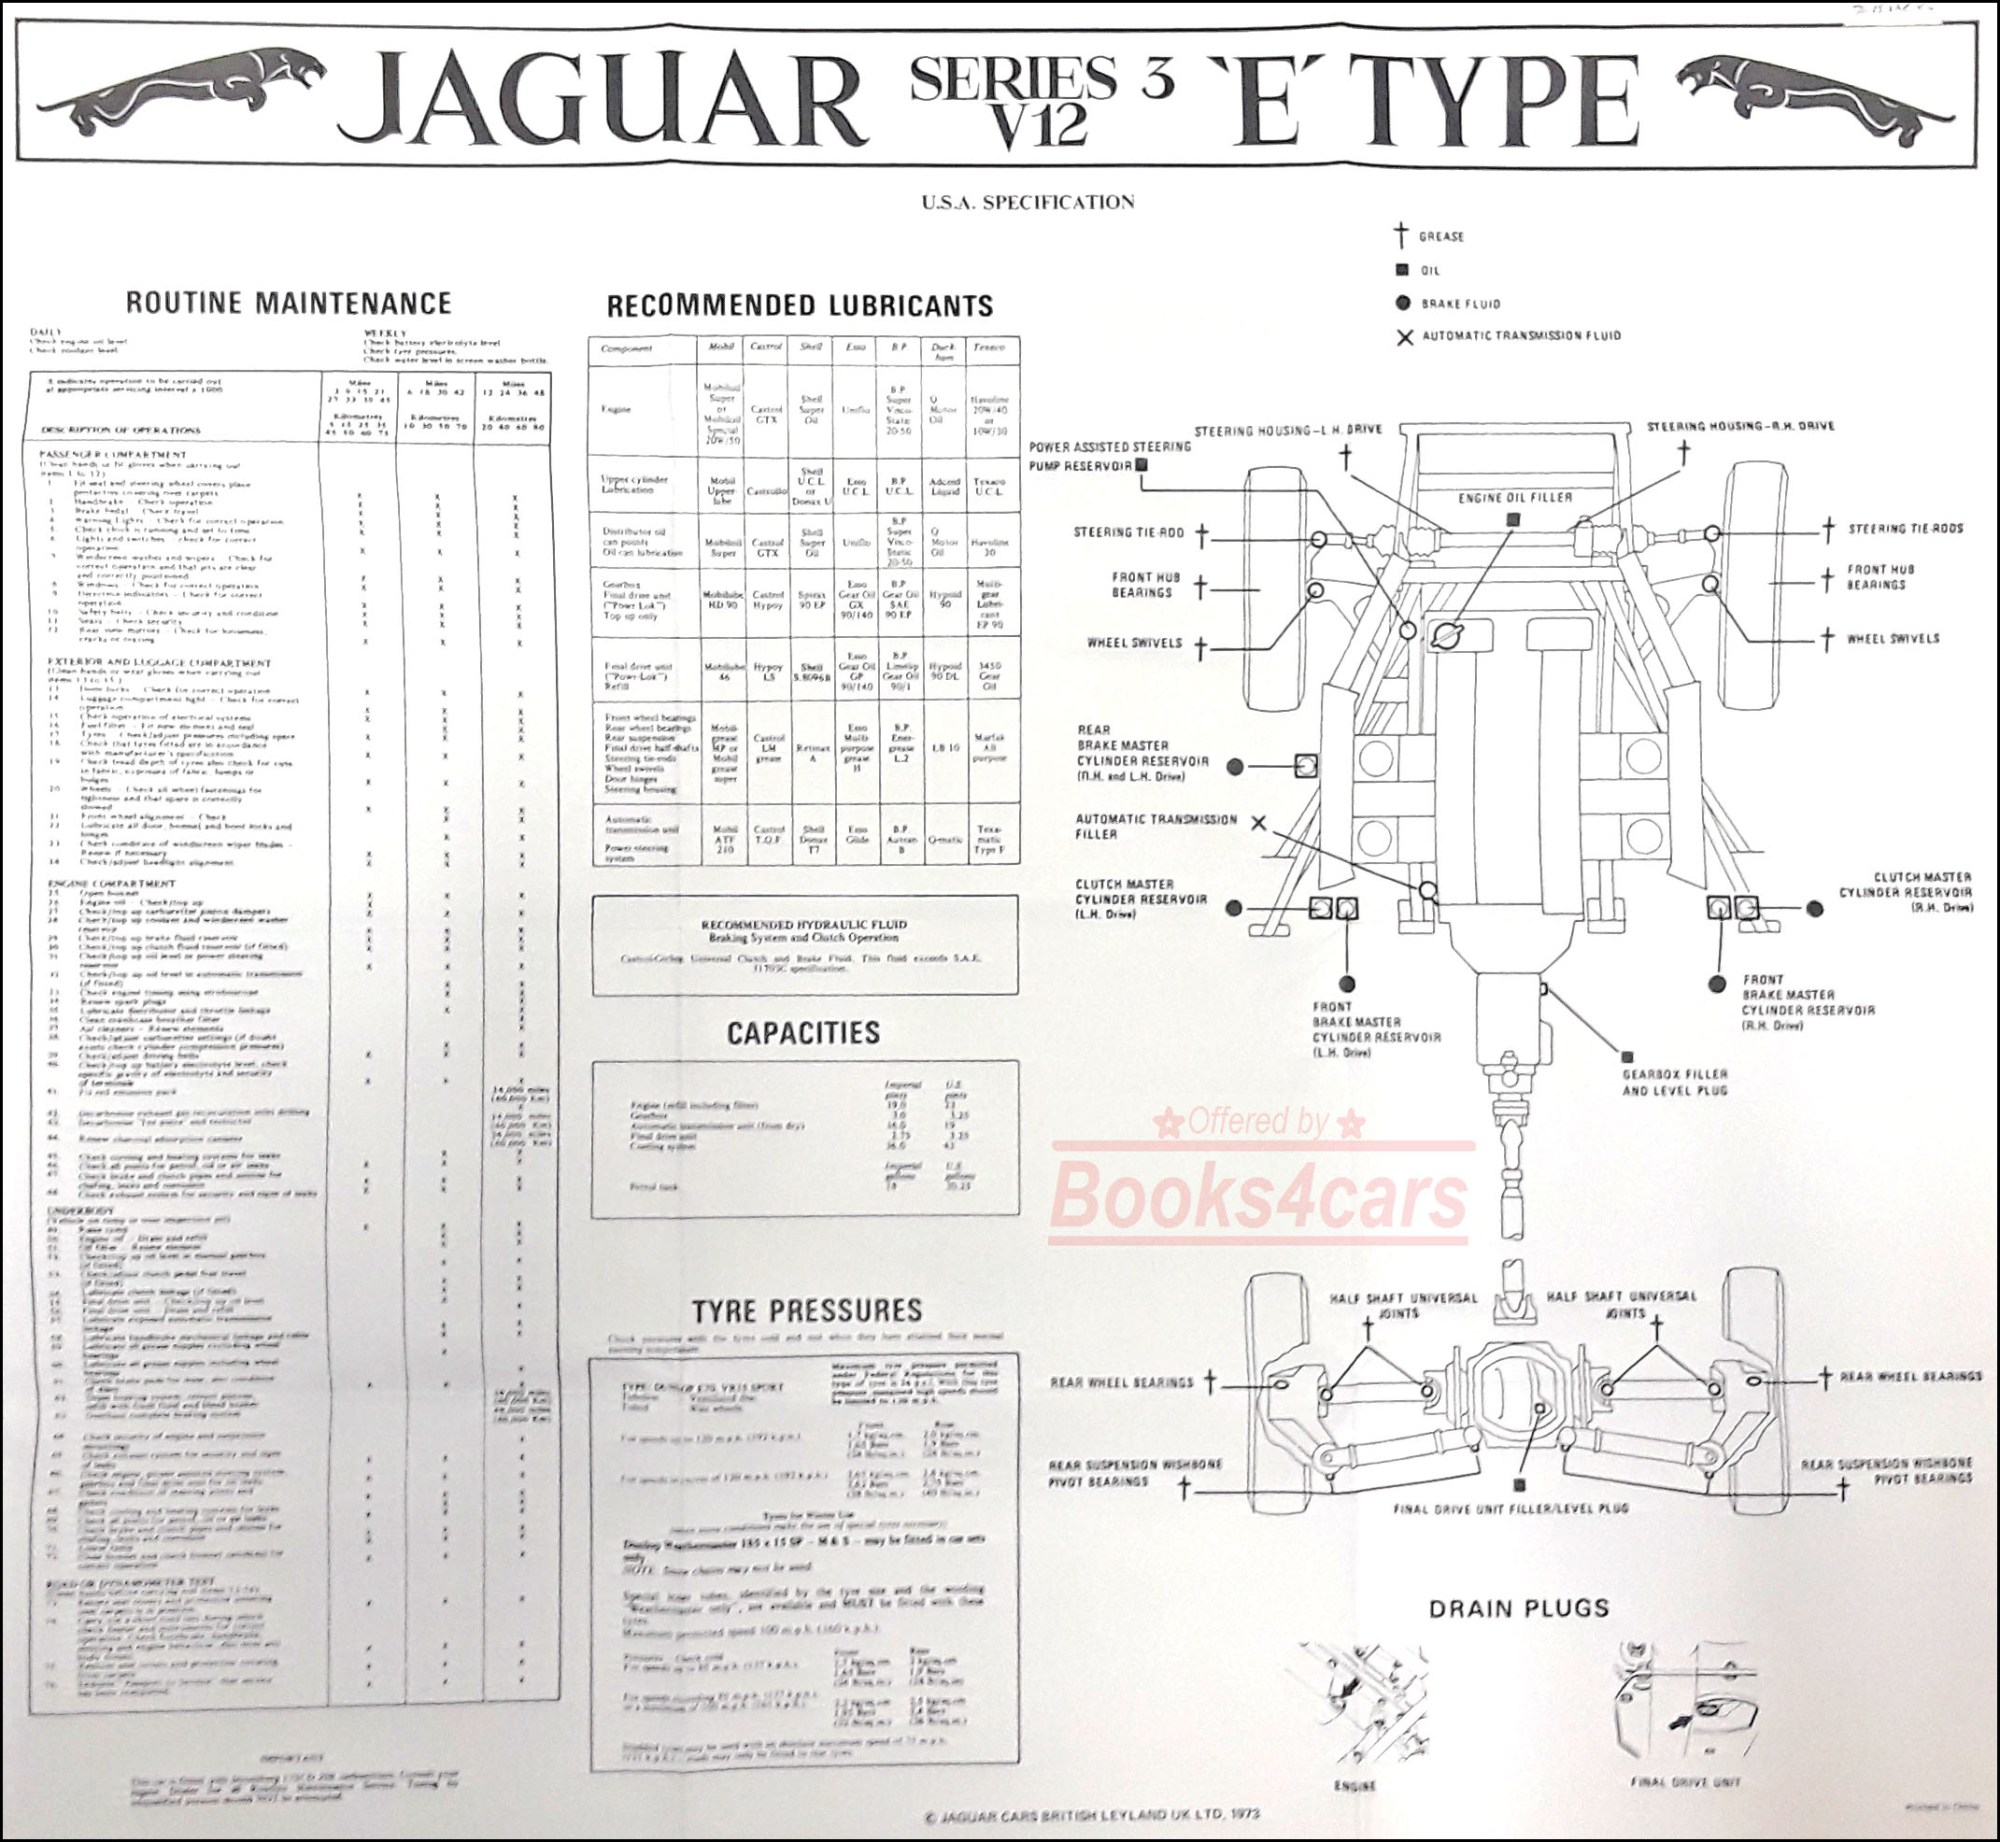 hight resolution of jaguar e type 4 2 wiring diagram wiring diagrams bib jaguar e type s2 wiring diagram wiring diagram jaguar e type